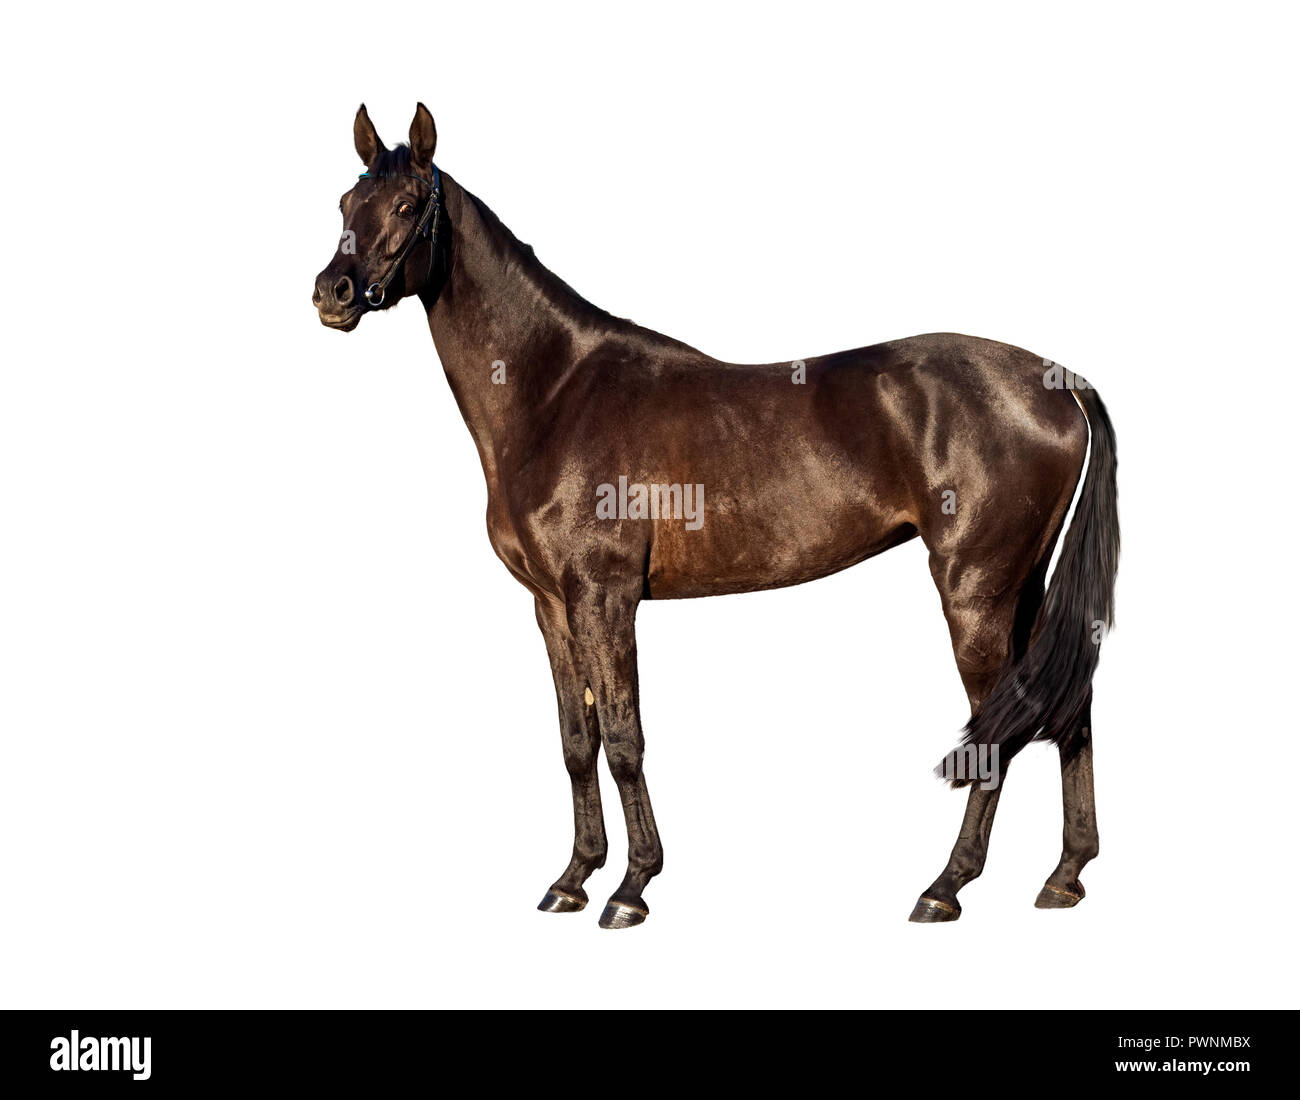 Portret of young bay horse isolated on a white background - Stock Image